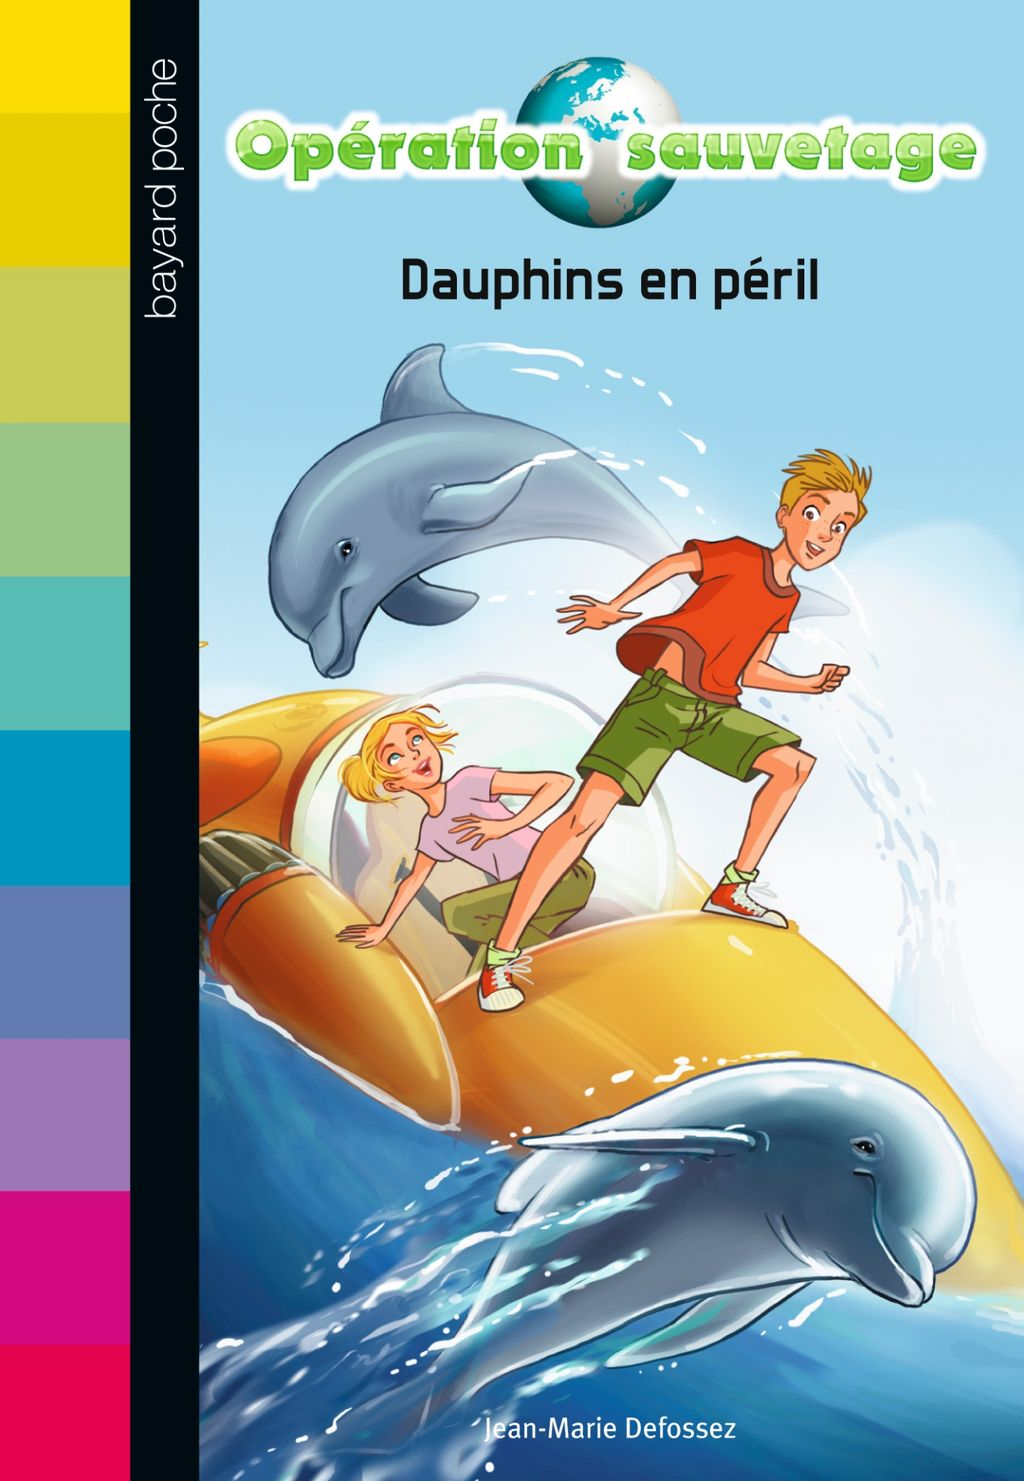 « Dauphins en péril » cover